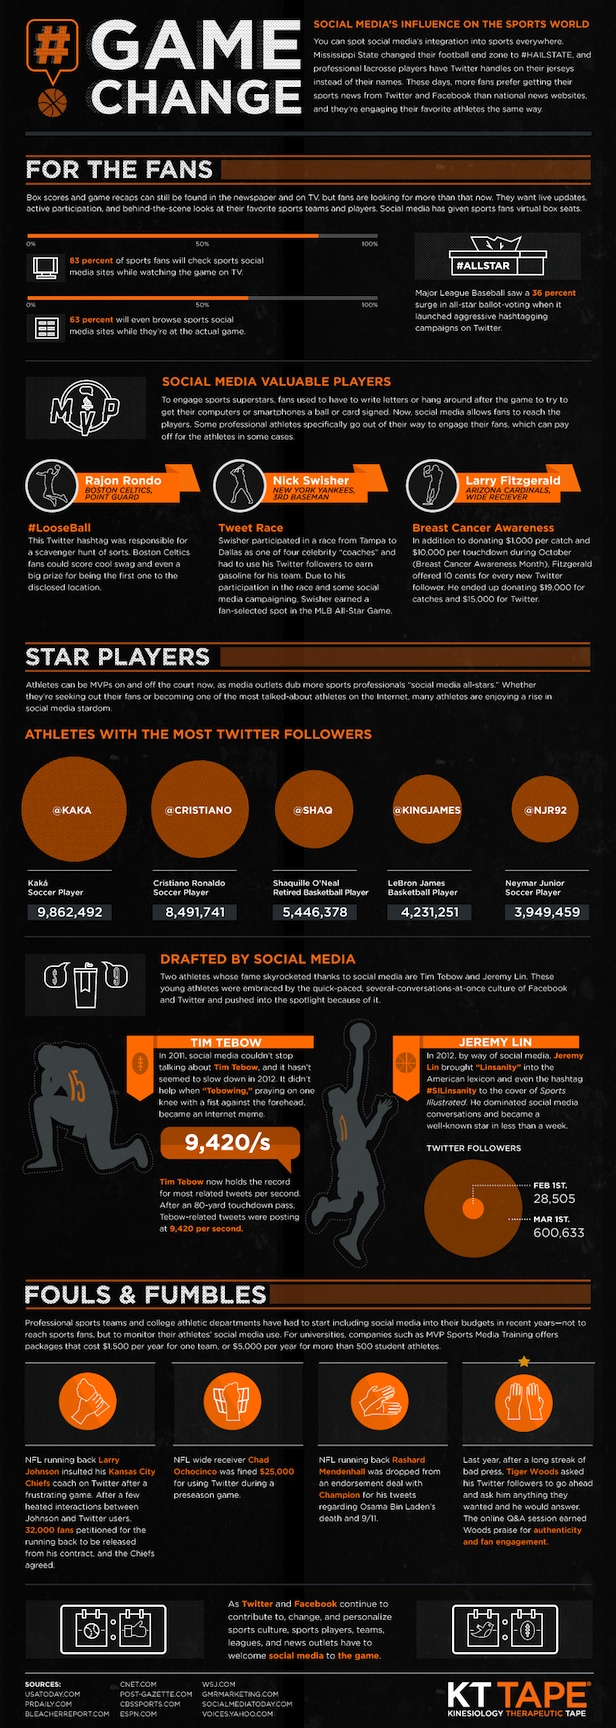 83% Of Sports Fans Use Social Media While Watching The Game [Infographic] | WebProNews